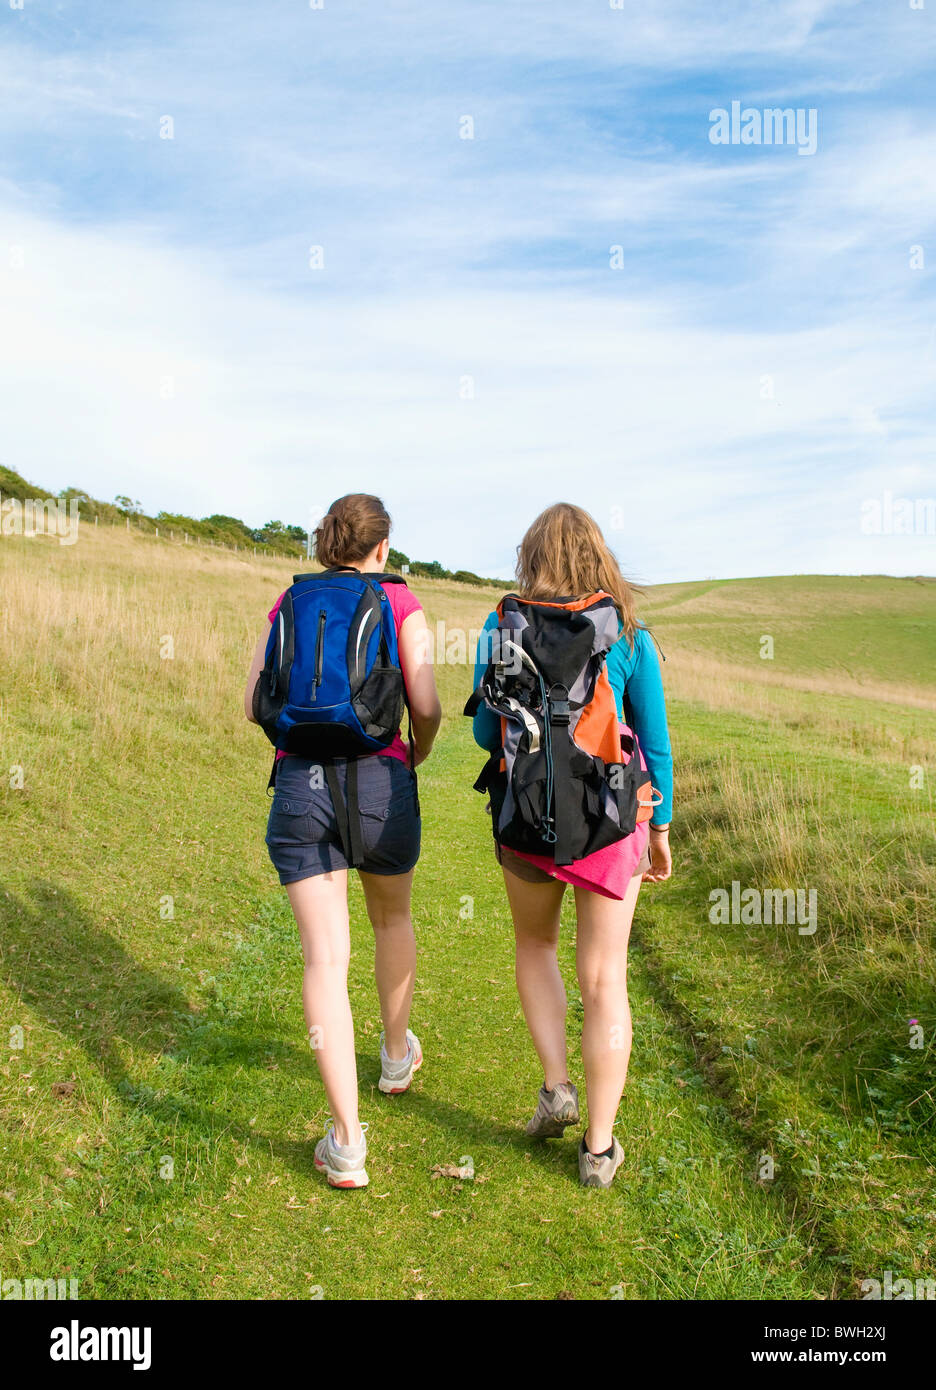 Two young women hikers climb up hill - Stock Image